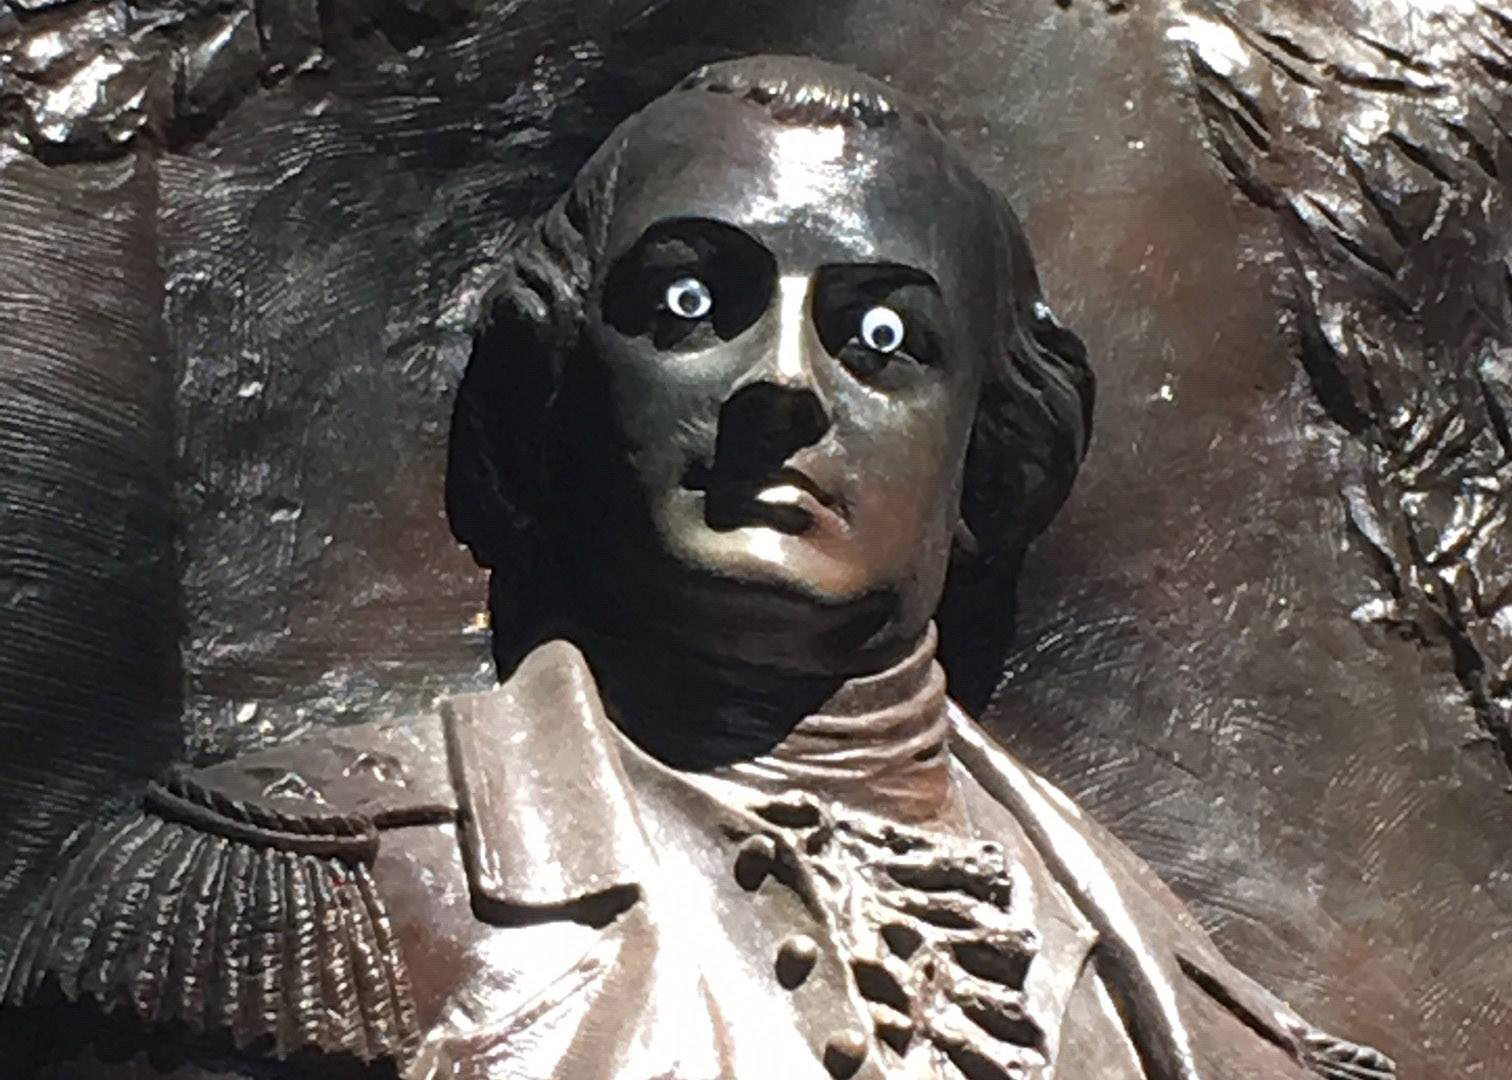 Vandalism Of Revolutionary War Statue With Googly Eyes Prompts Police Probe